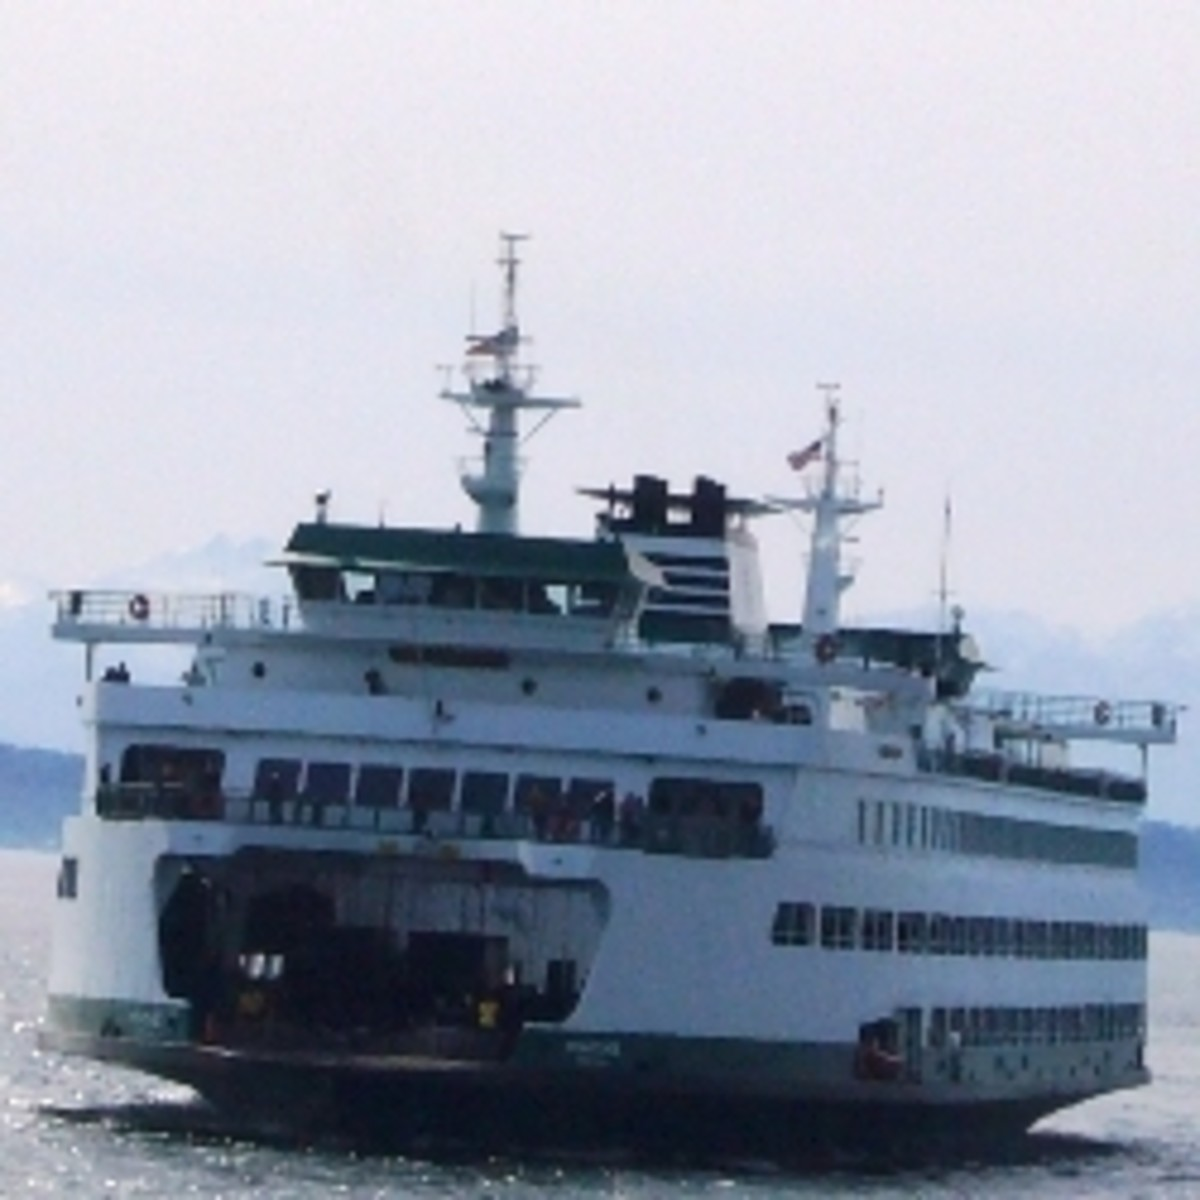 A Washington State Ferry